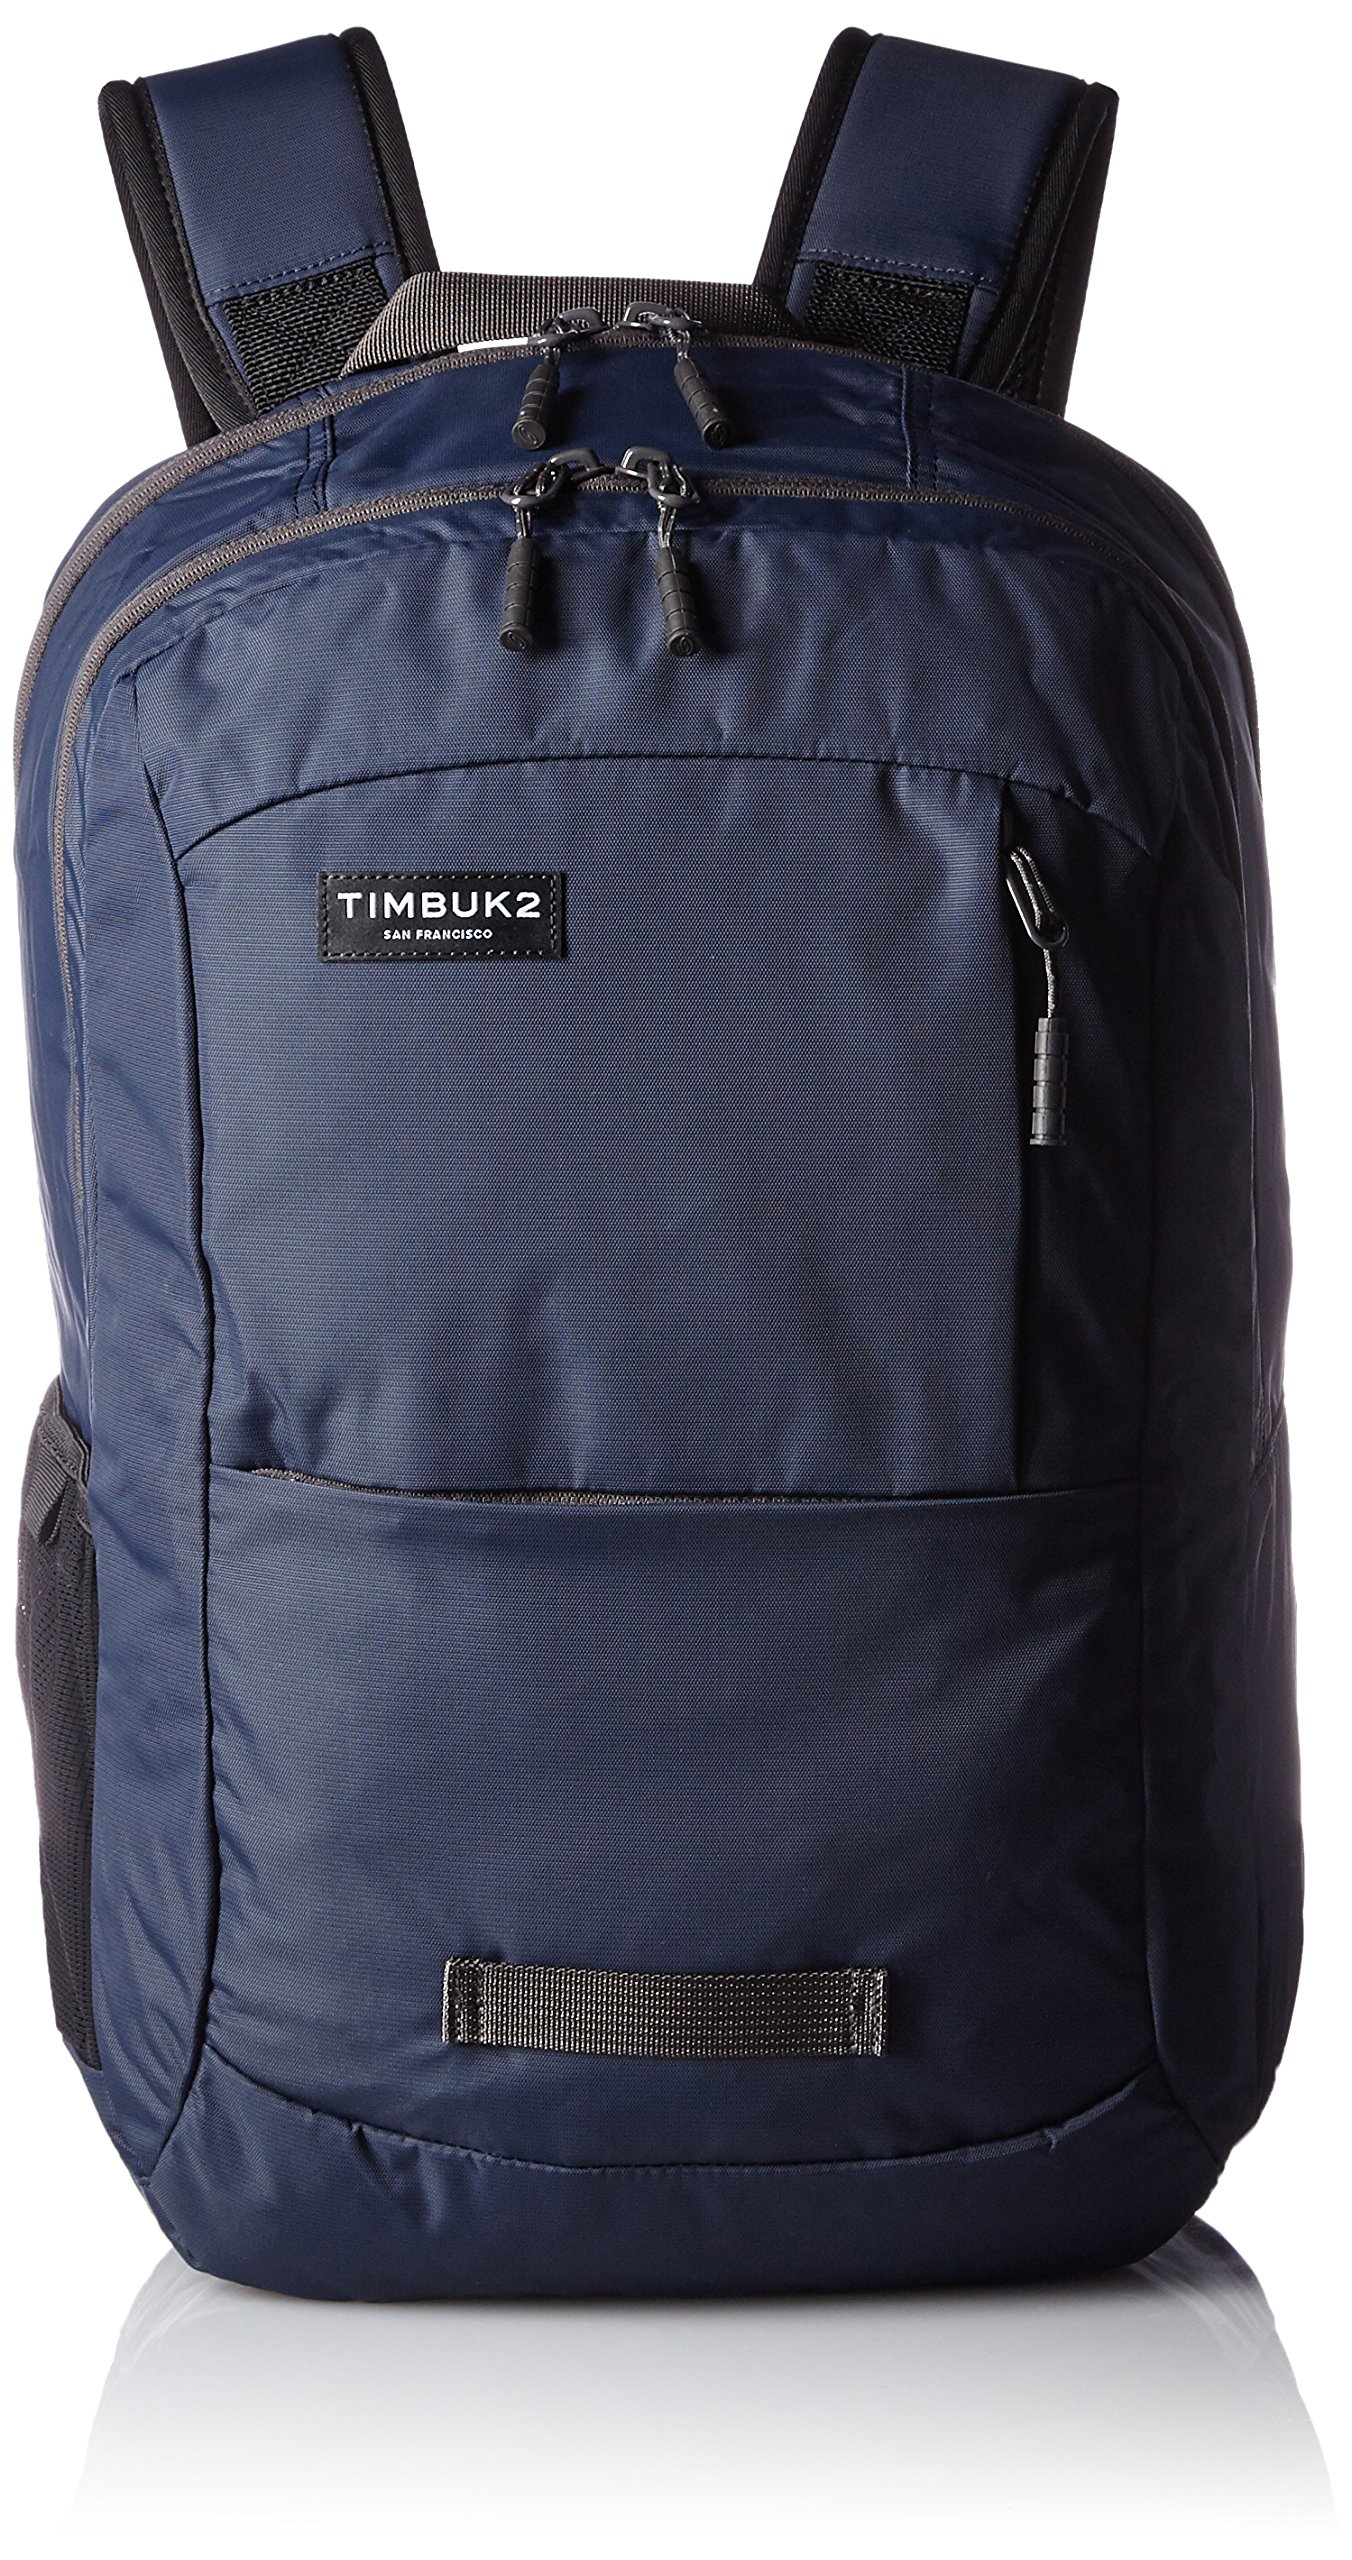 1ded42194 Galleon - Timbuk2 Parkside Laptop Backpack, Nautical, Os, One Size